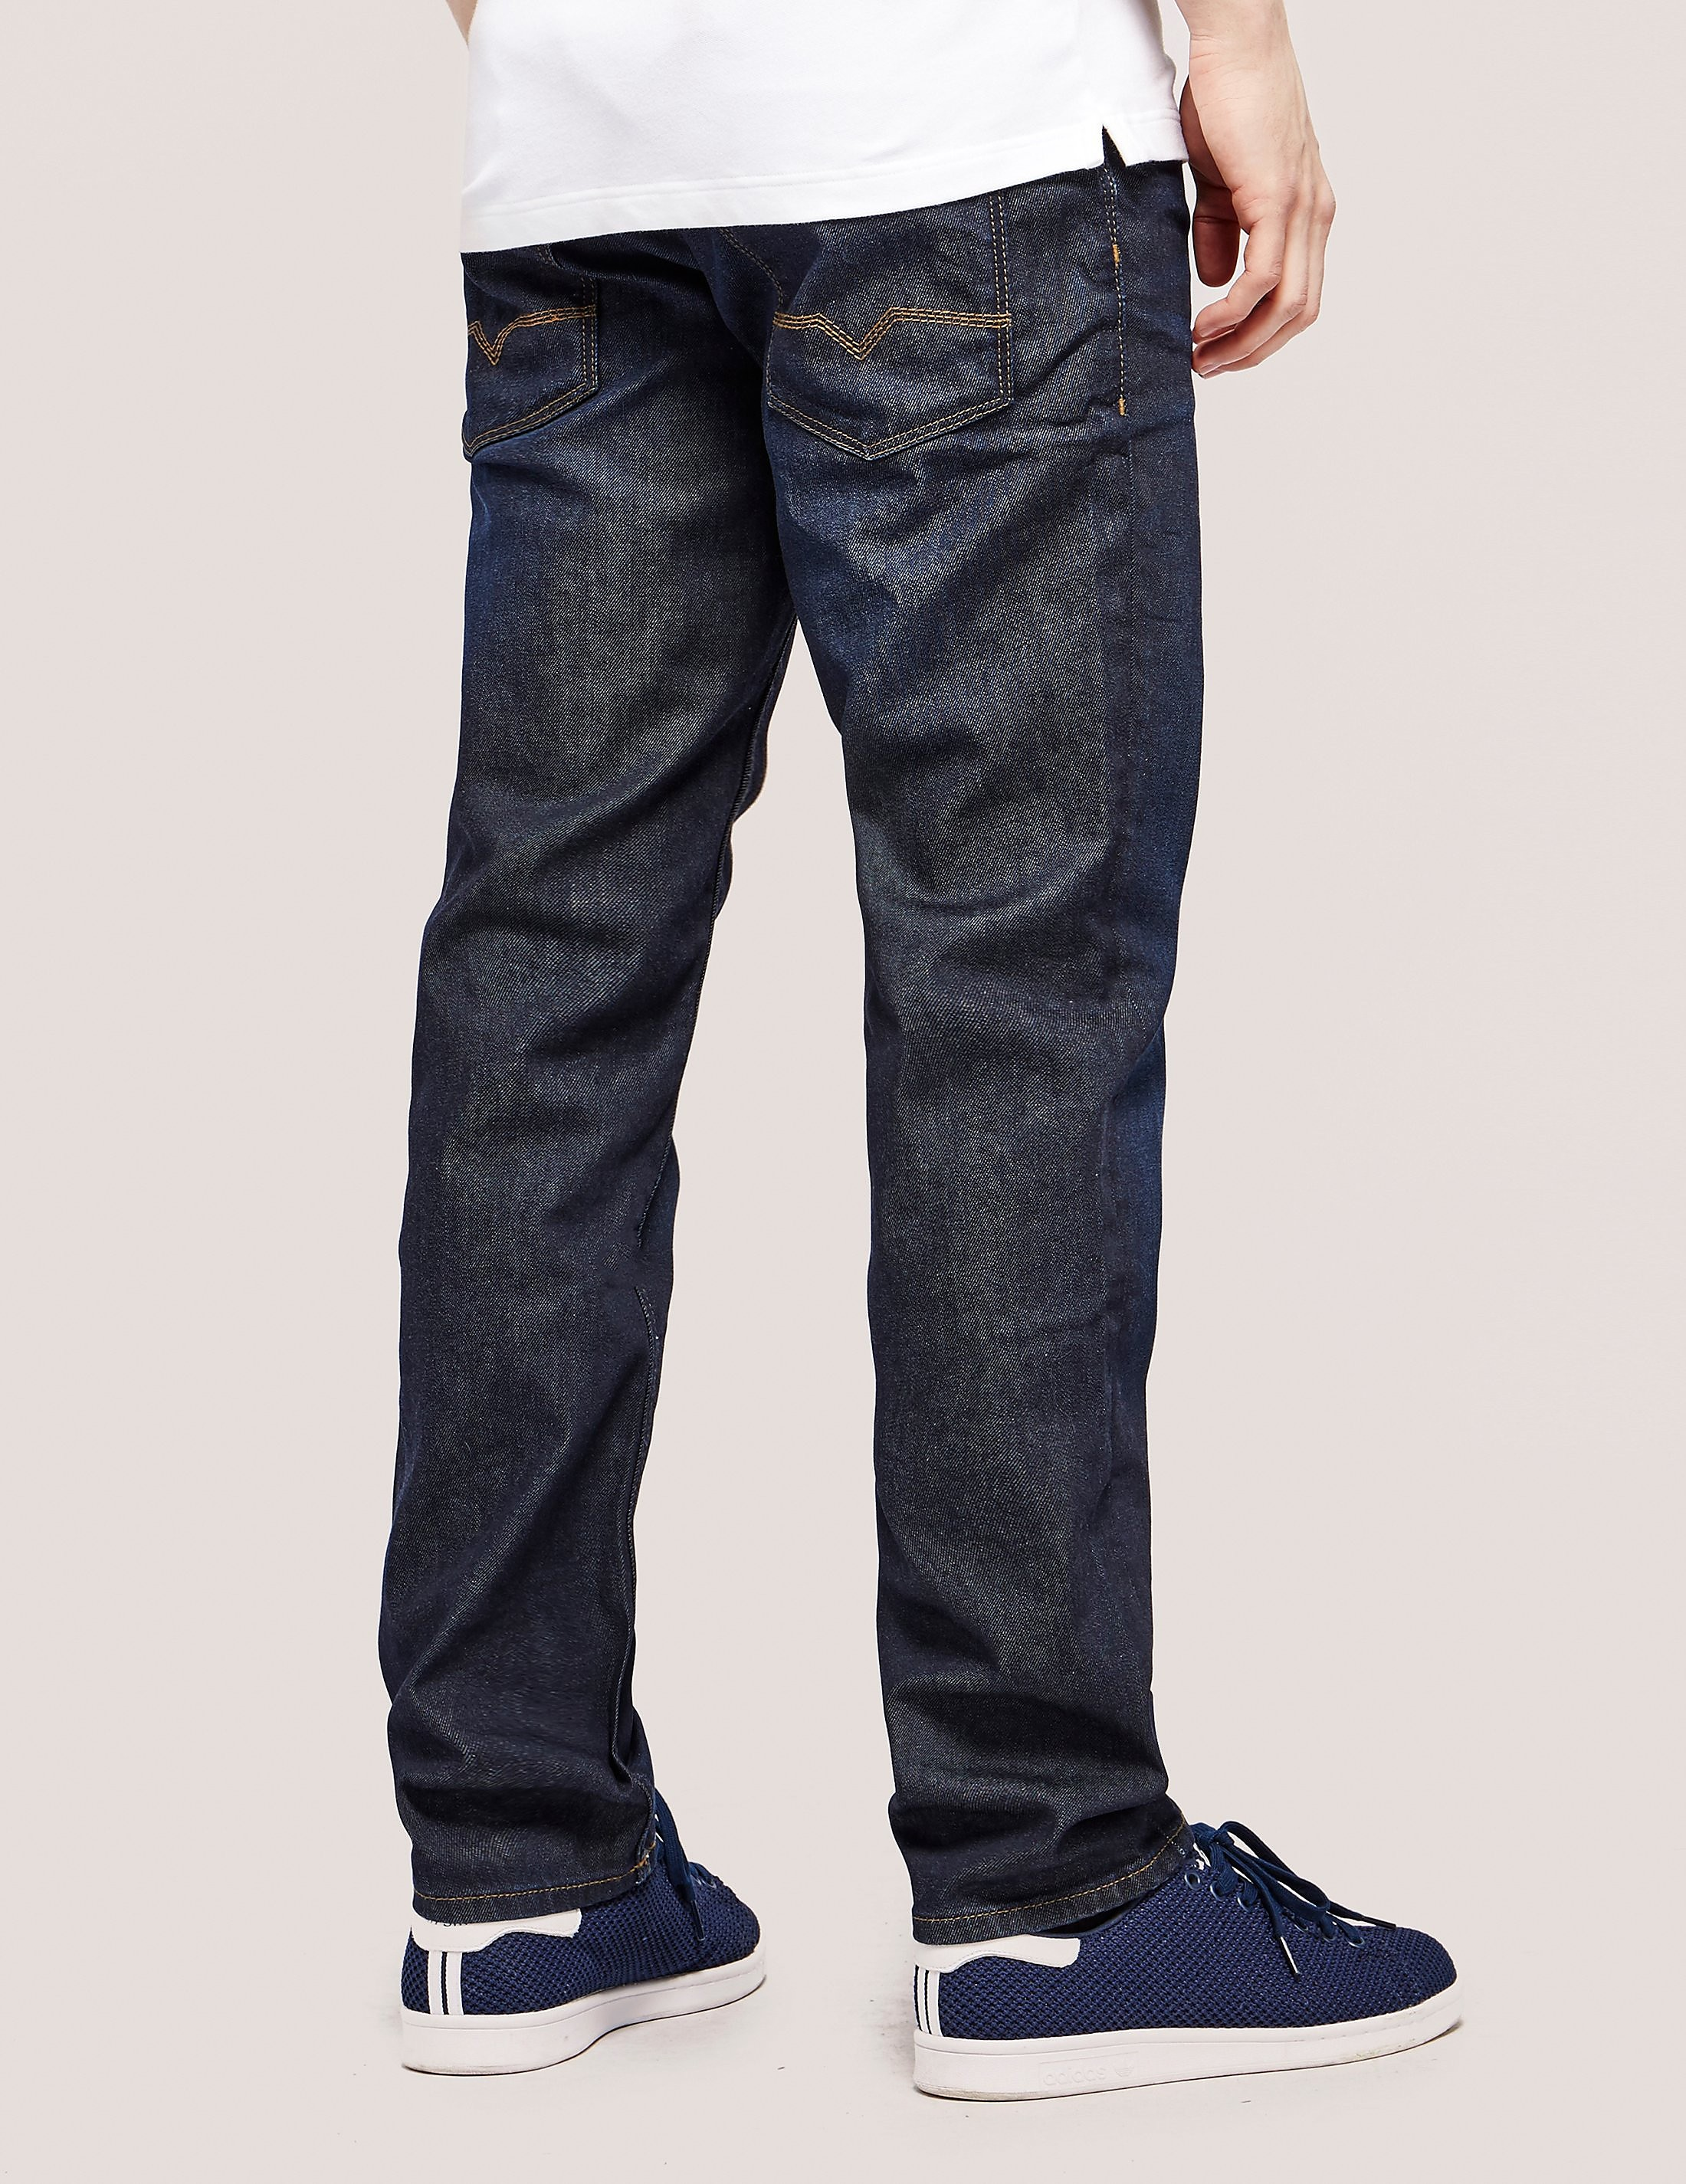 BOSS Orange 63 Slim Fit Jean